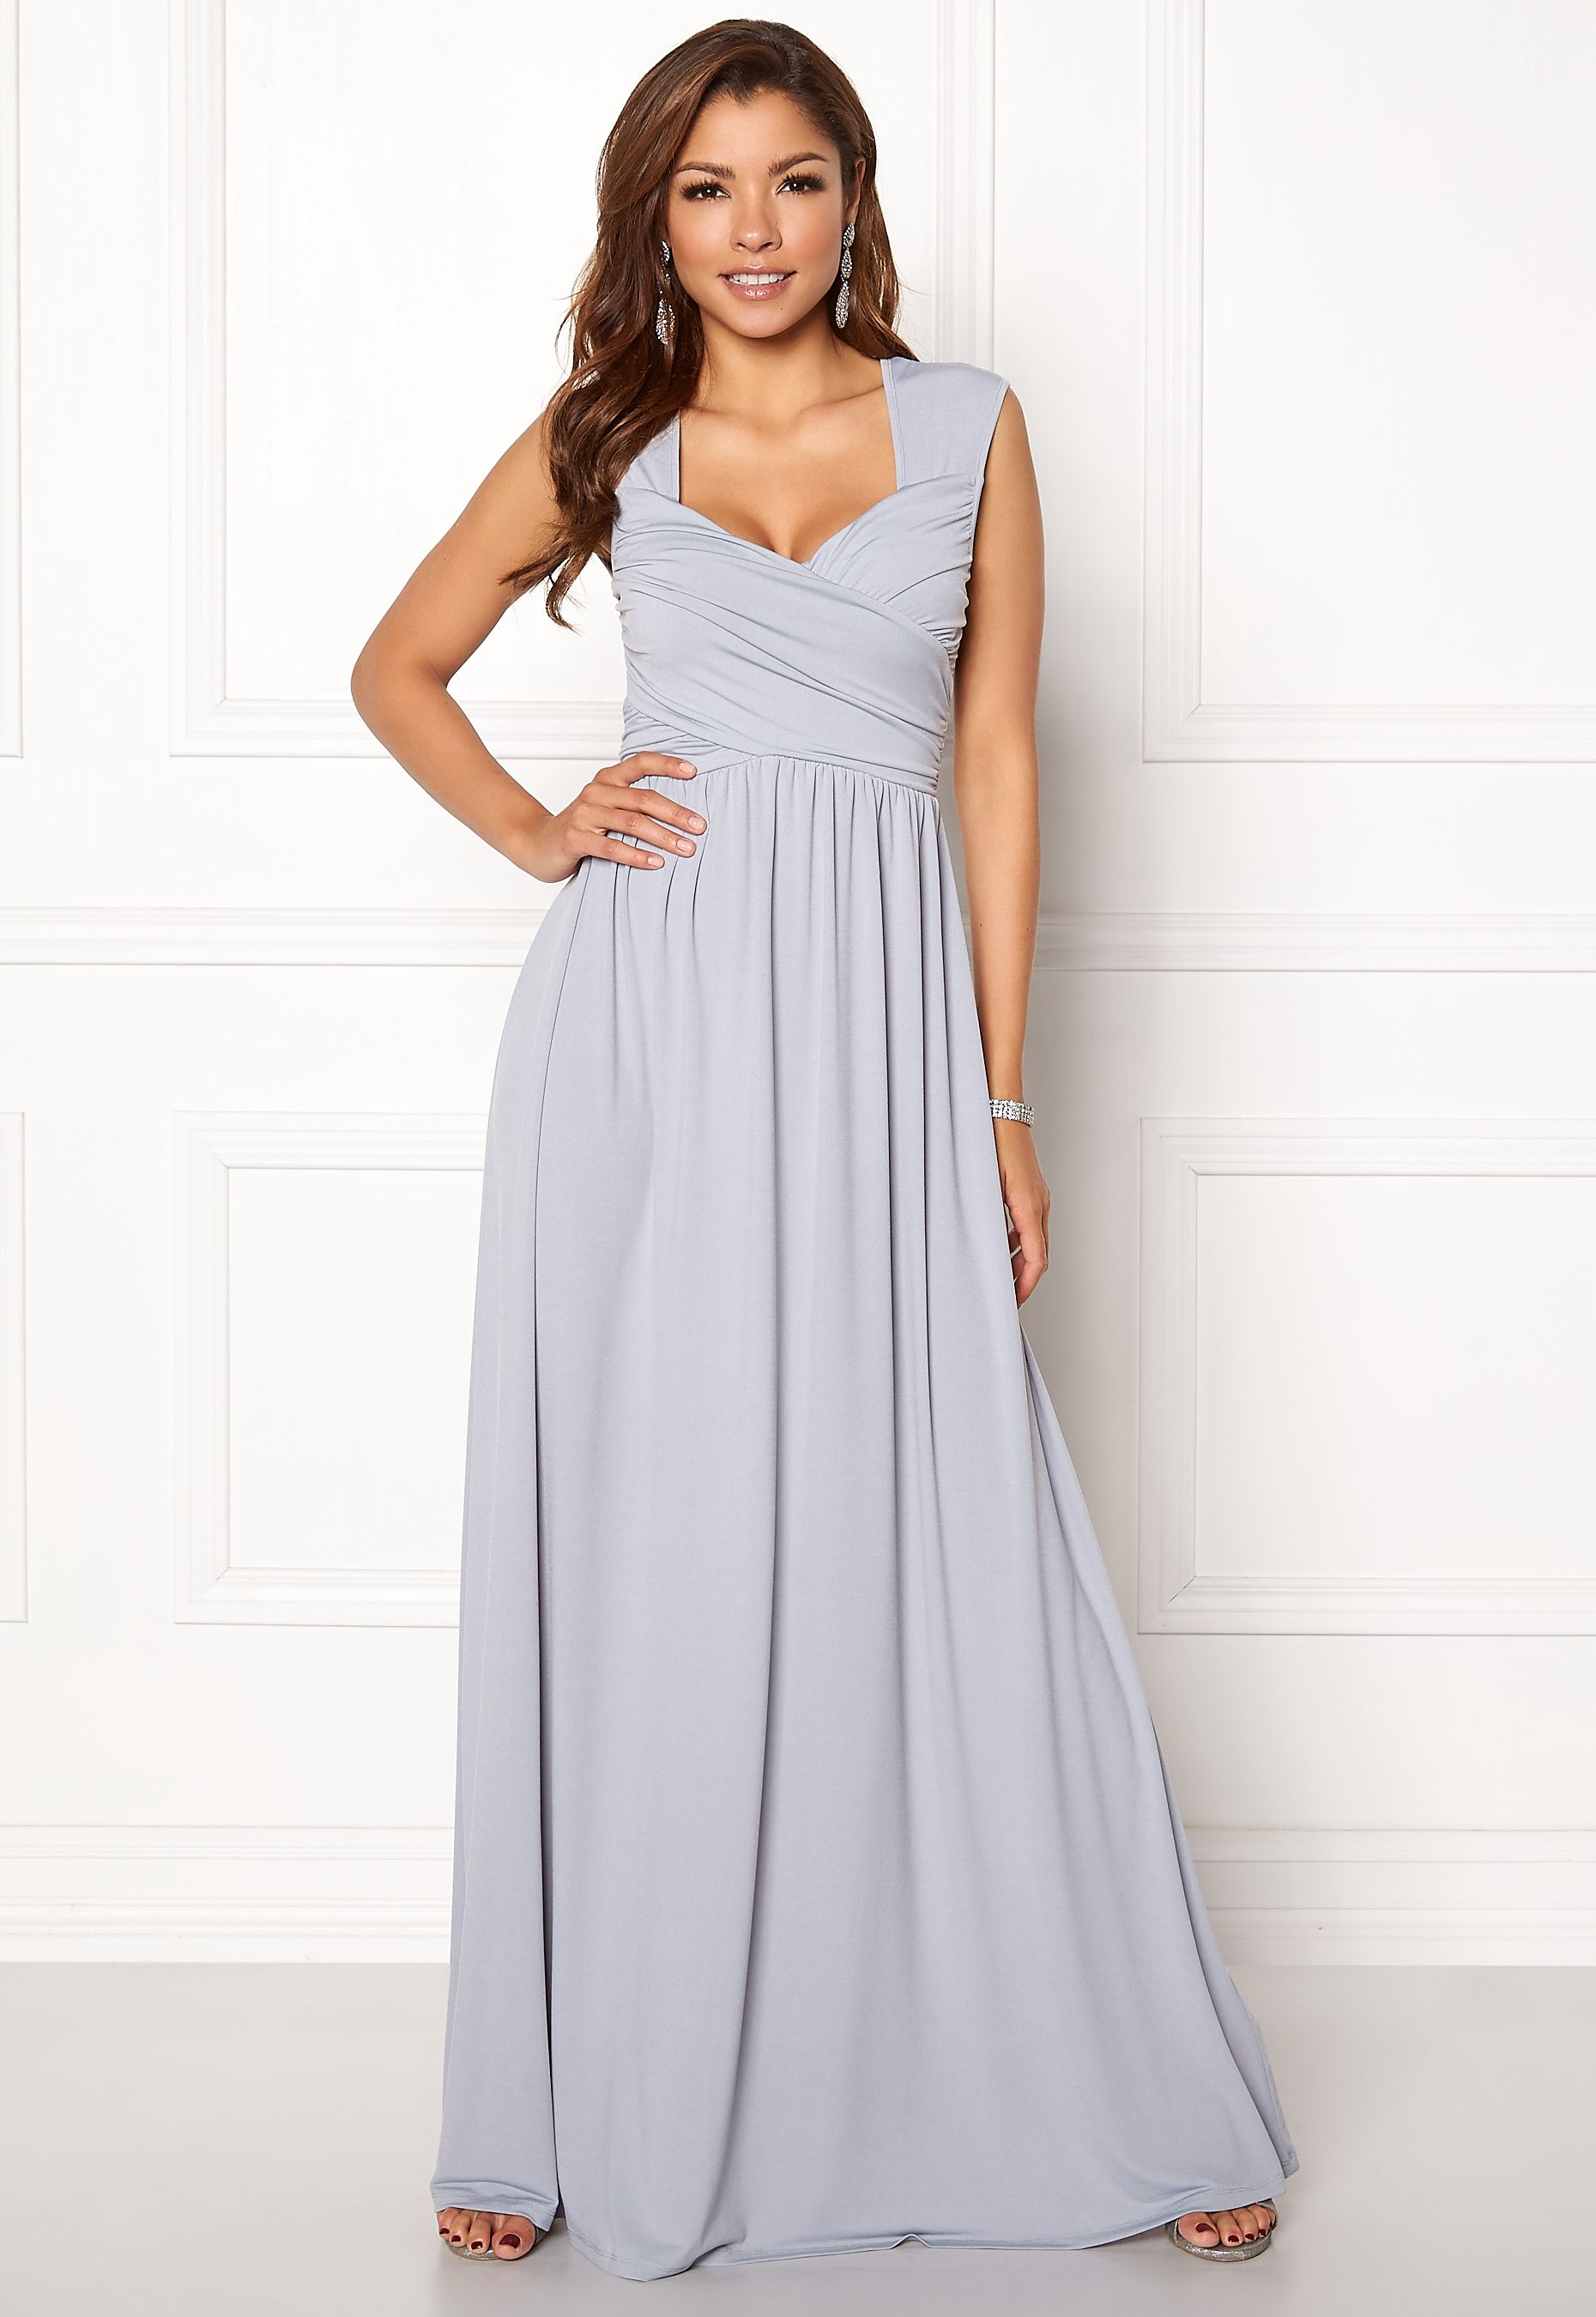 Chiara Forthi Kirily Maxi Dress Light grey - Bubbleroom   Wishful ... bfdd7872cd